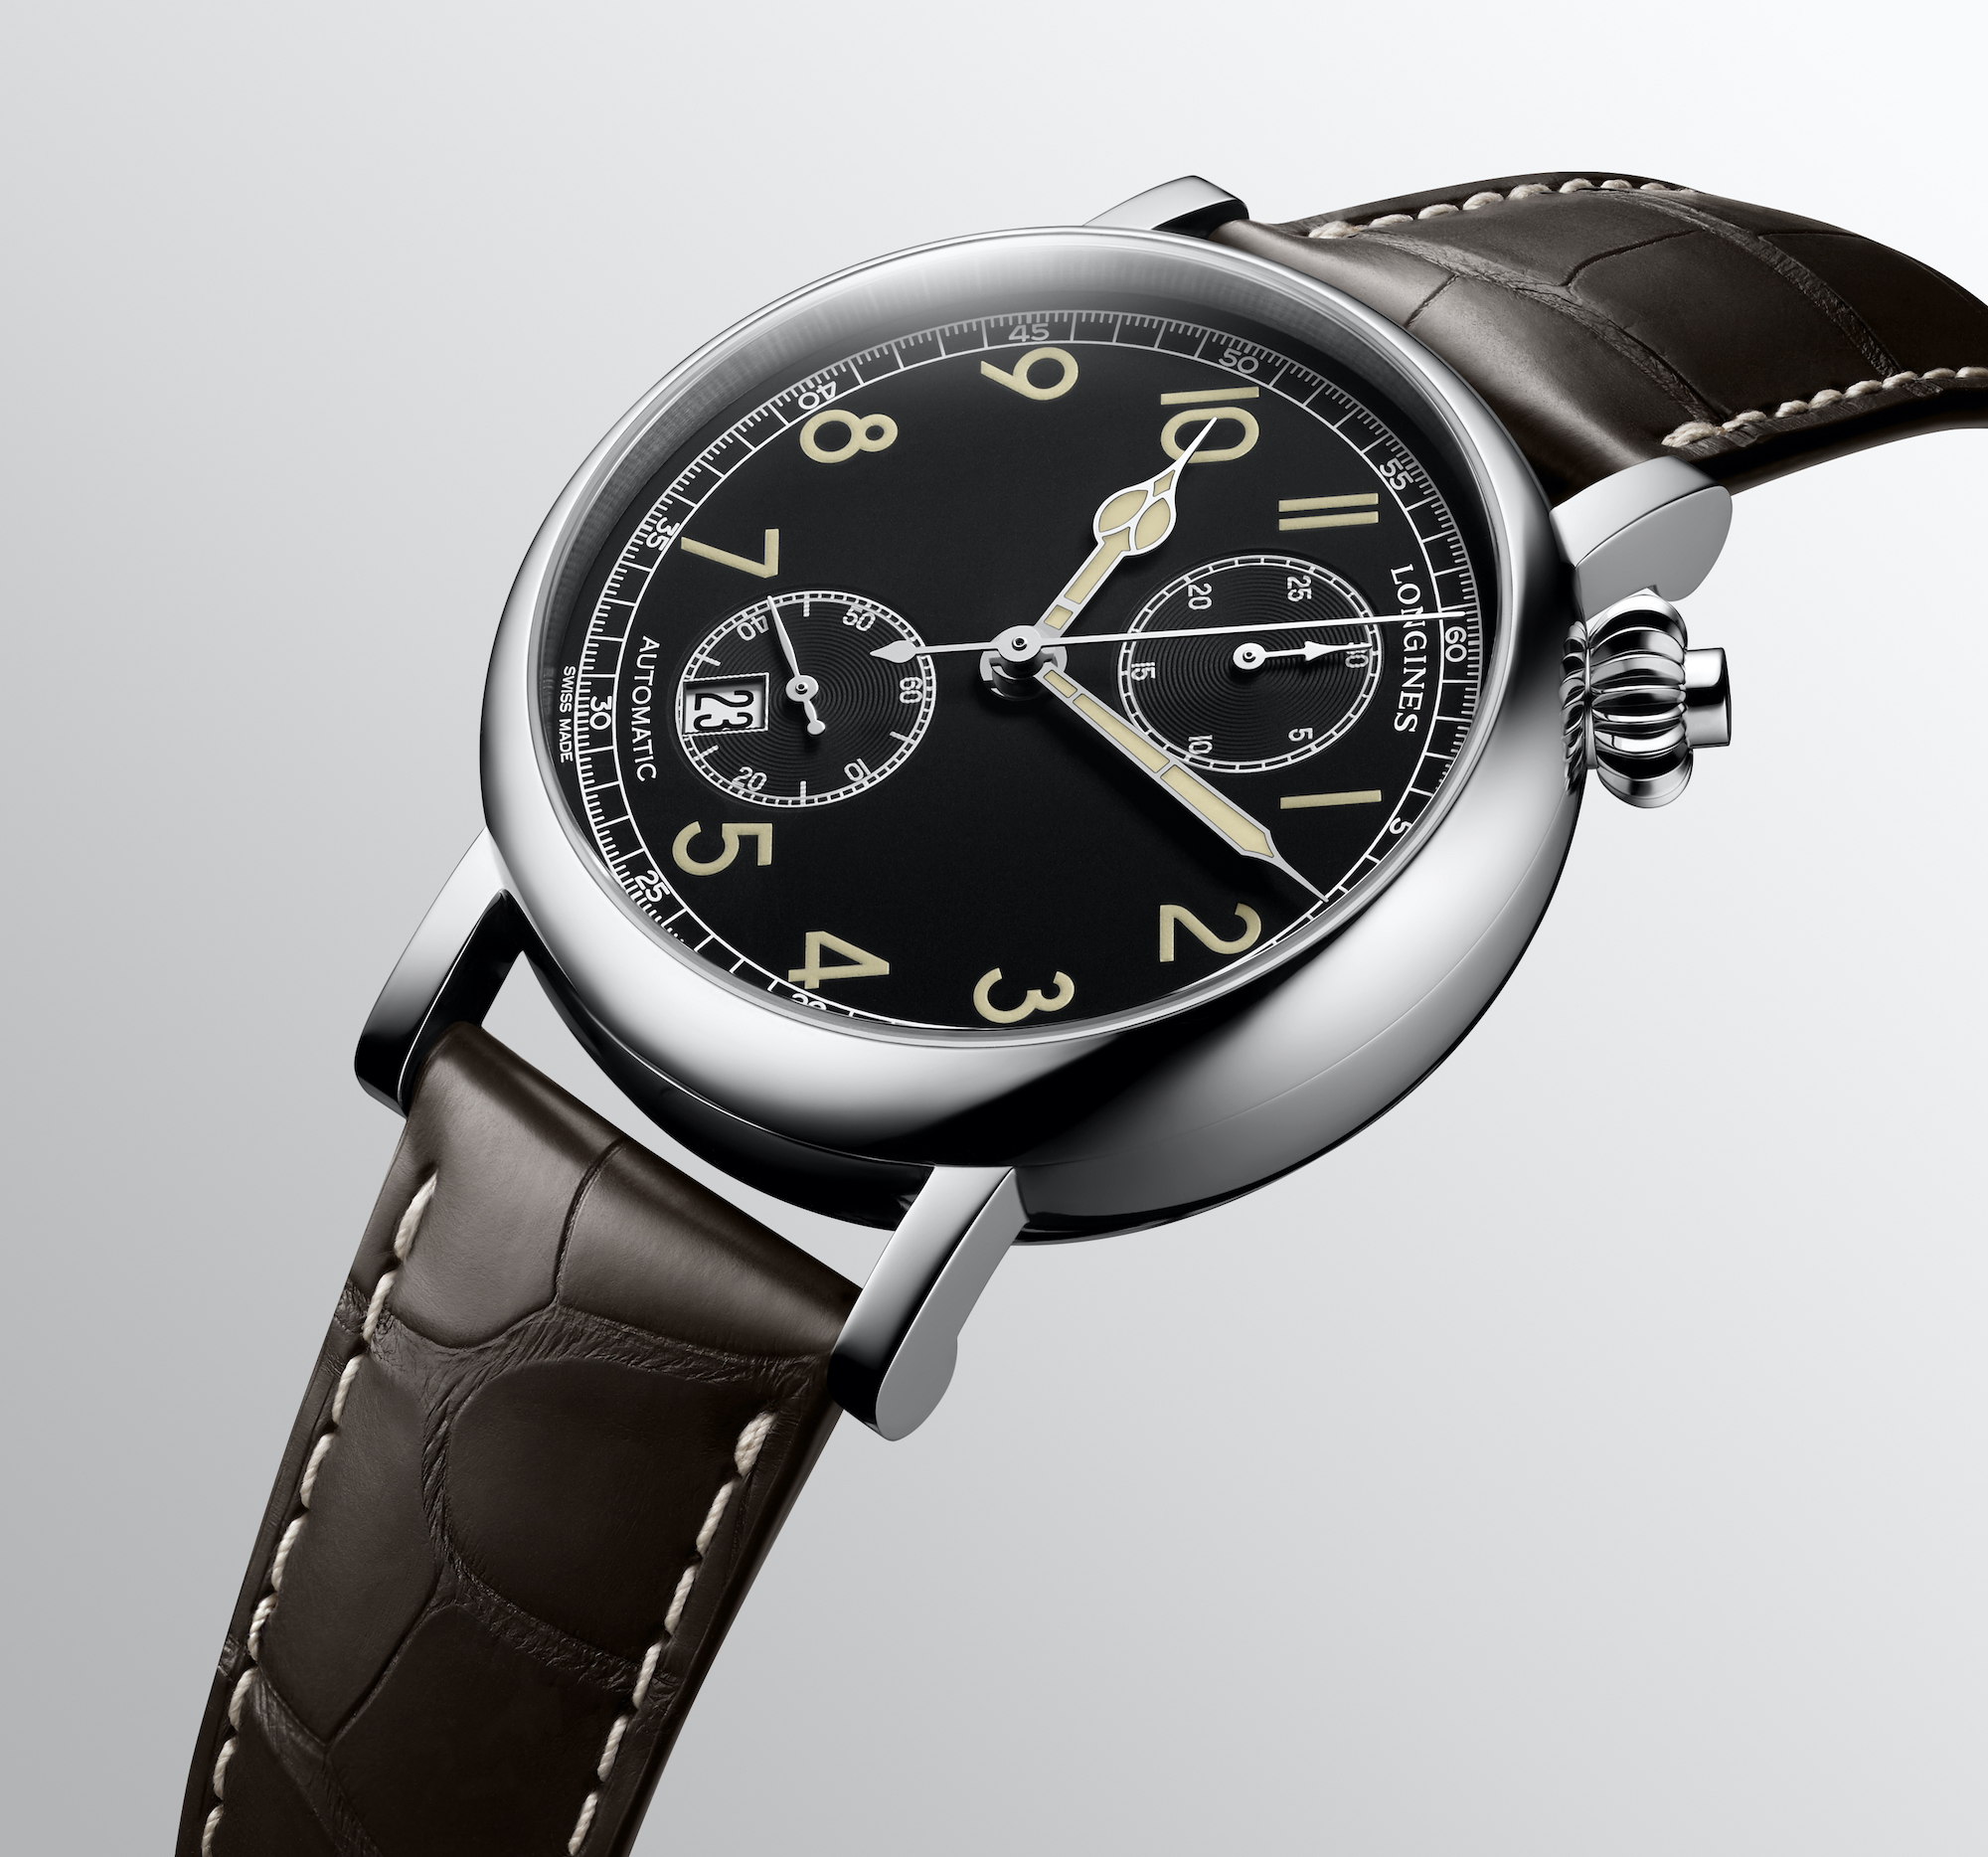 The Longines Avigation Watch A-7 1935 detalle 2